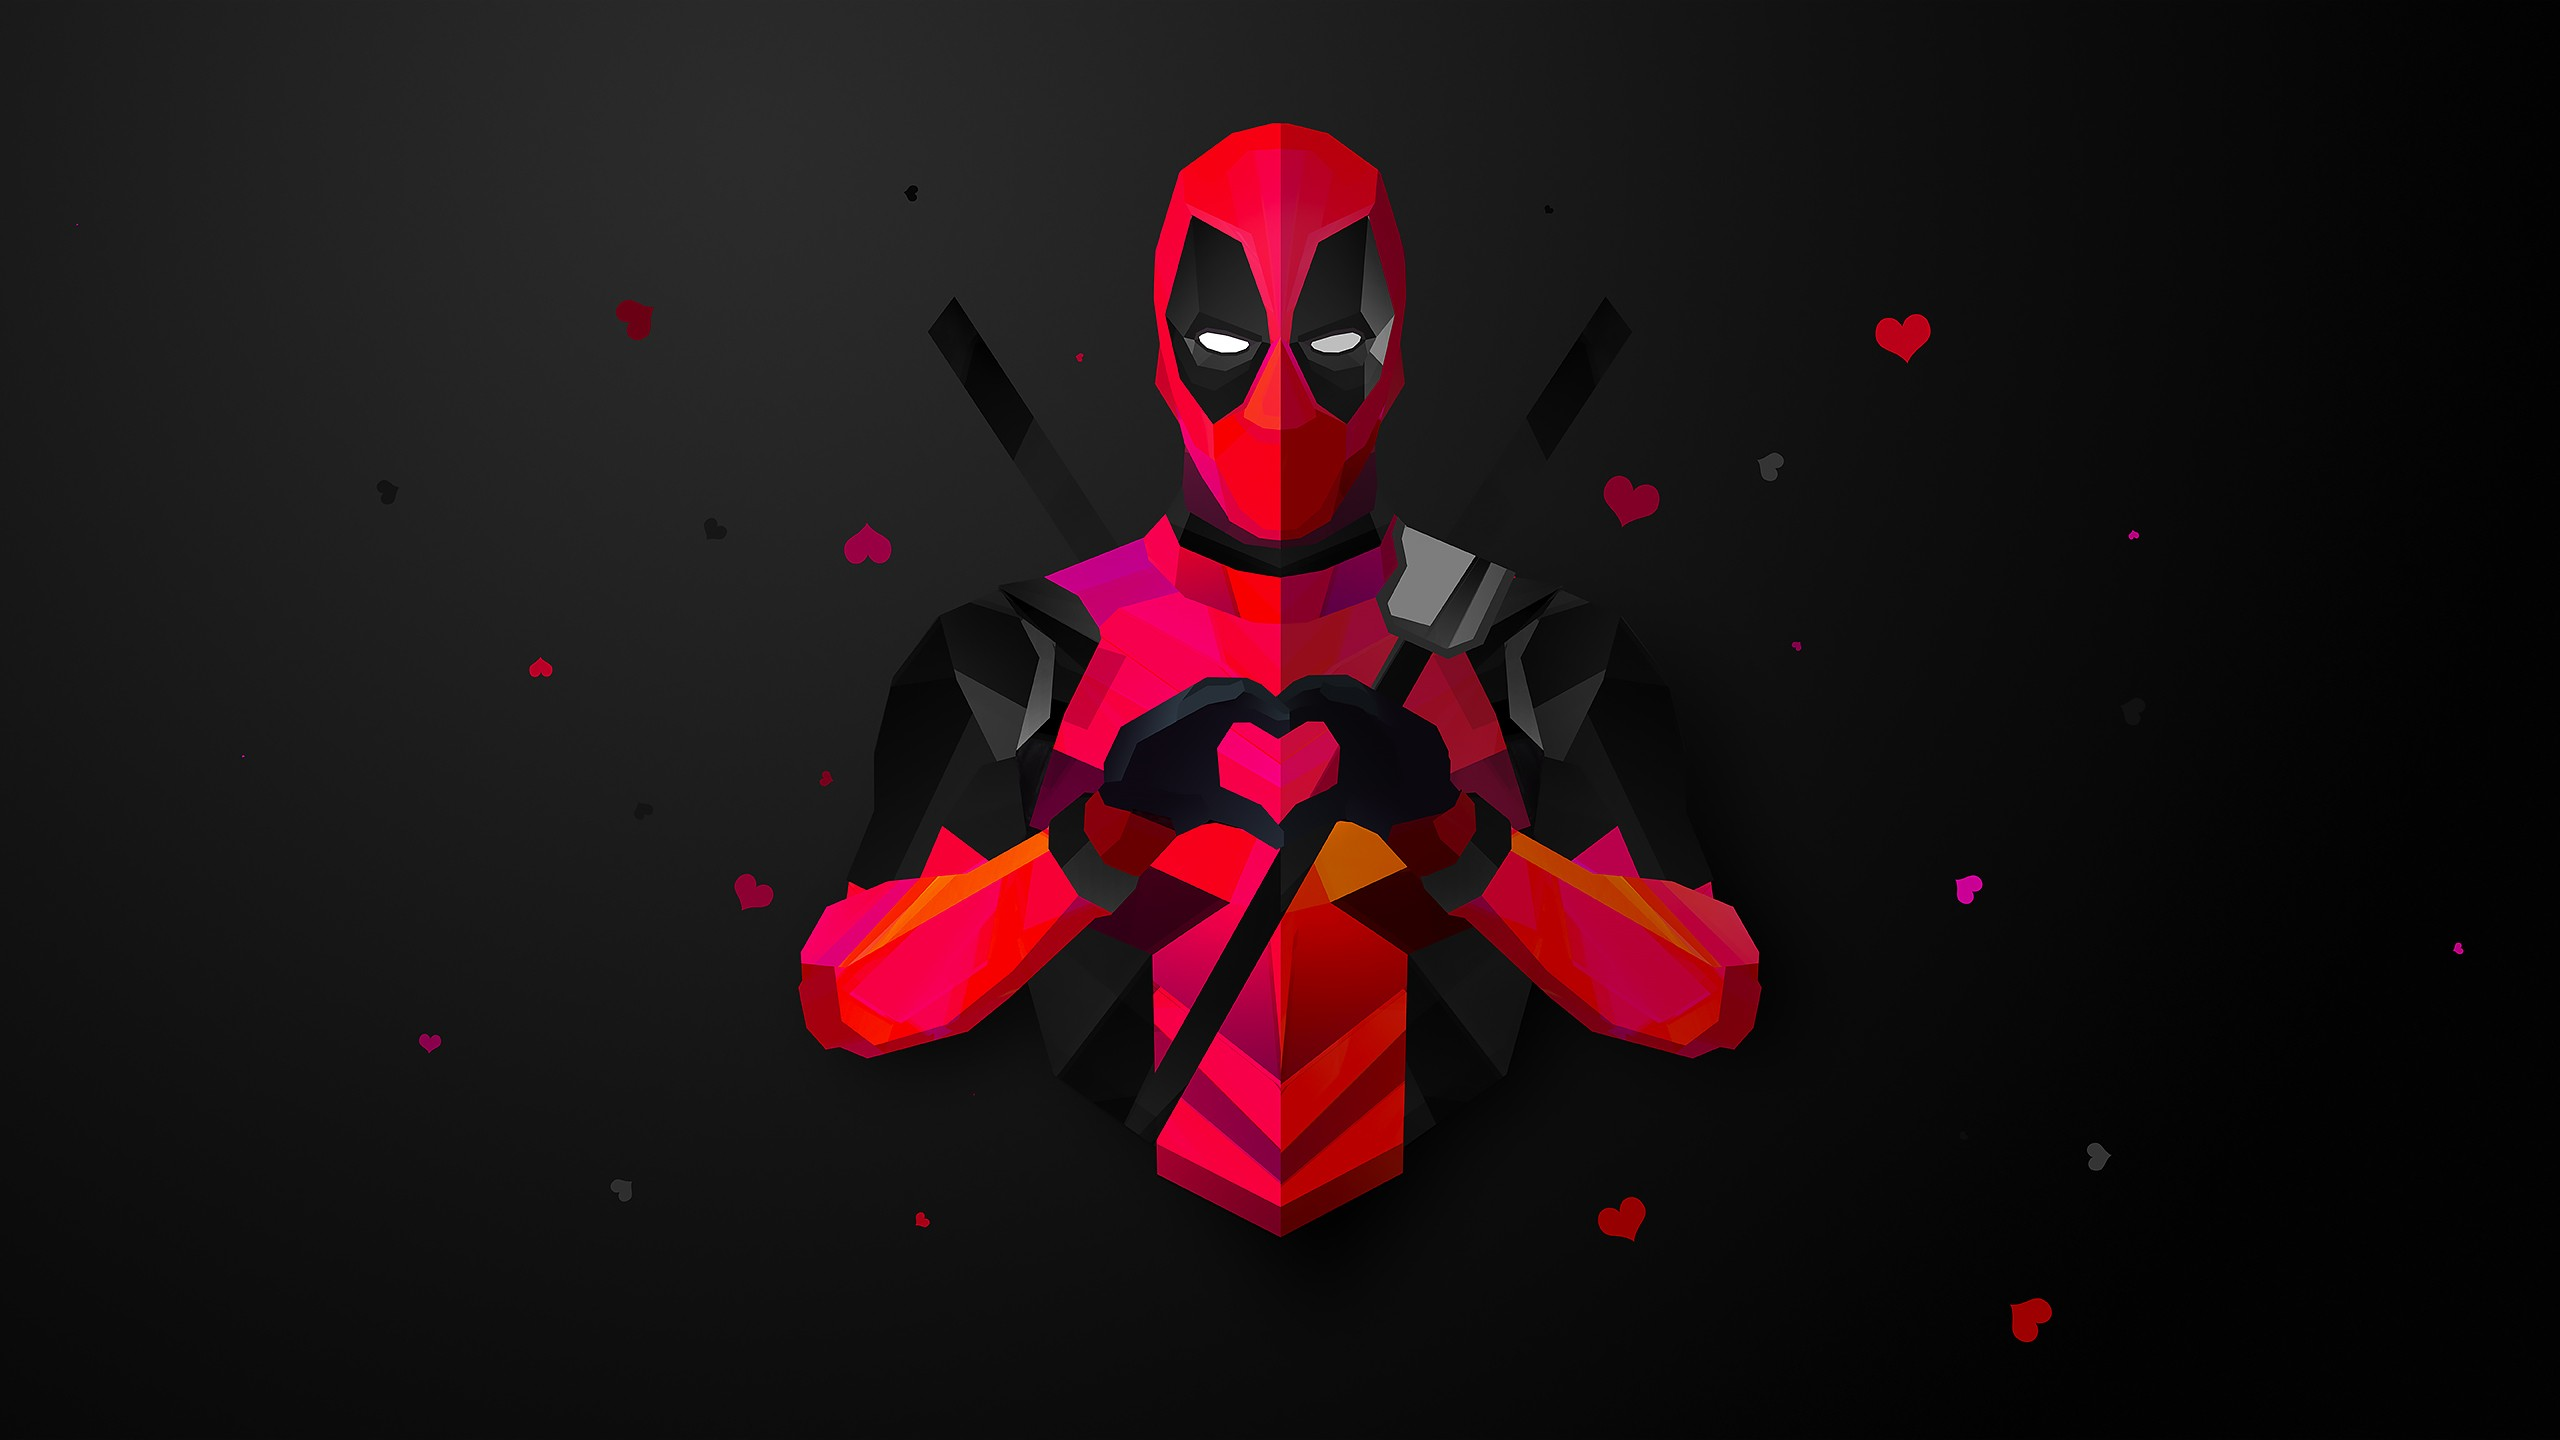 Carbon Wallpaper Iphone X Deadpool Wallpaper Hd 183 ① Download Free Wallpapers For